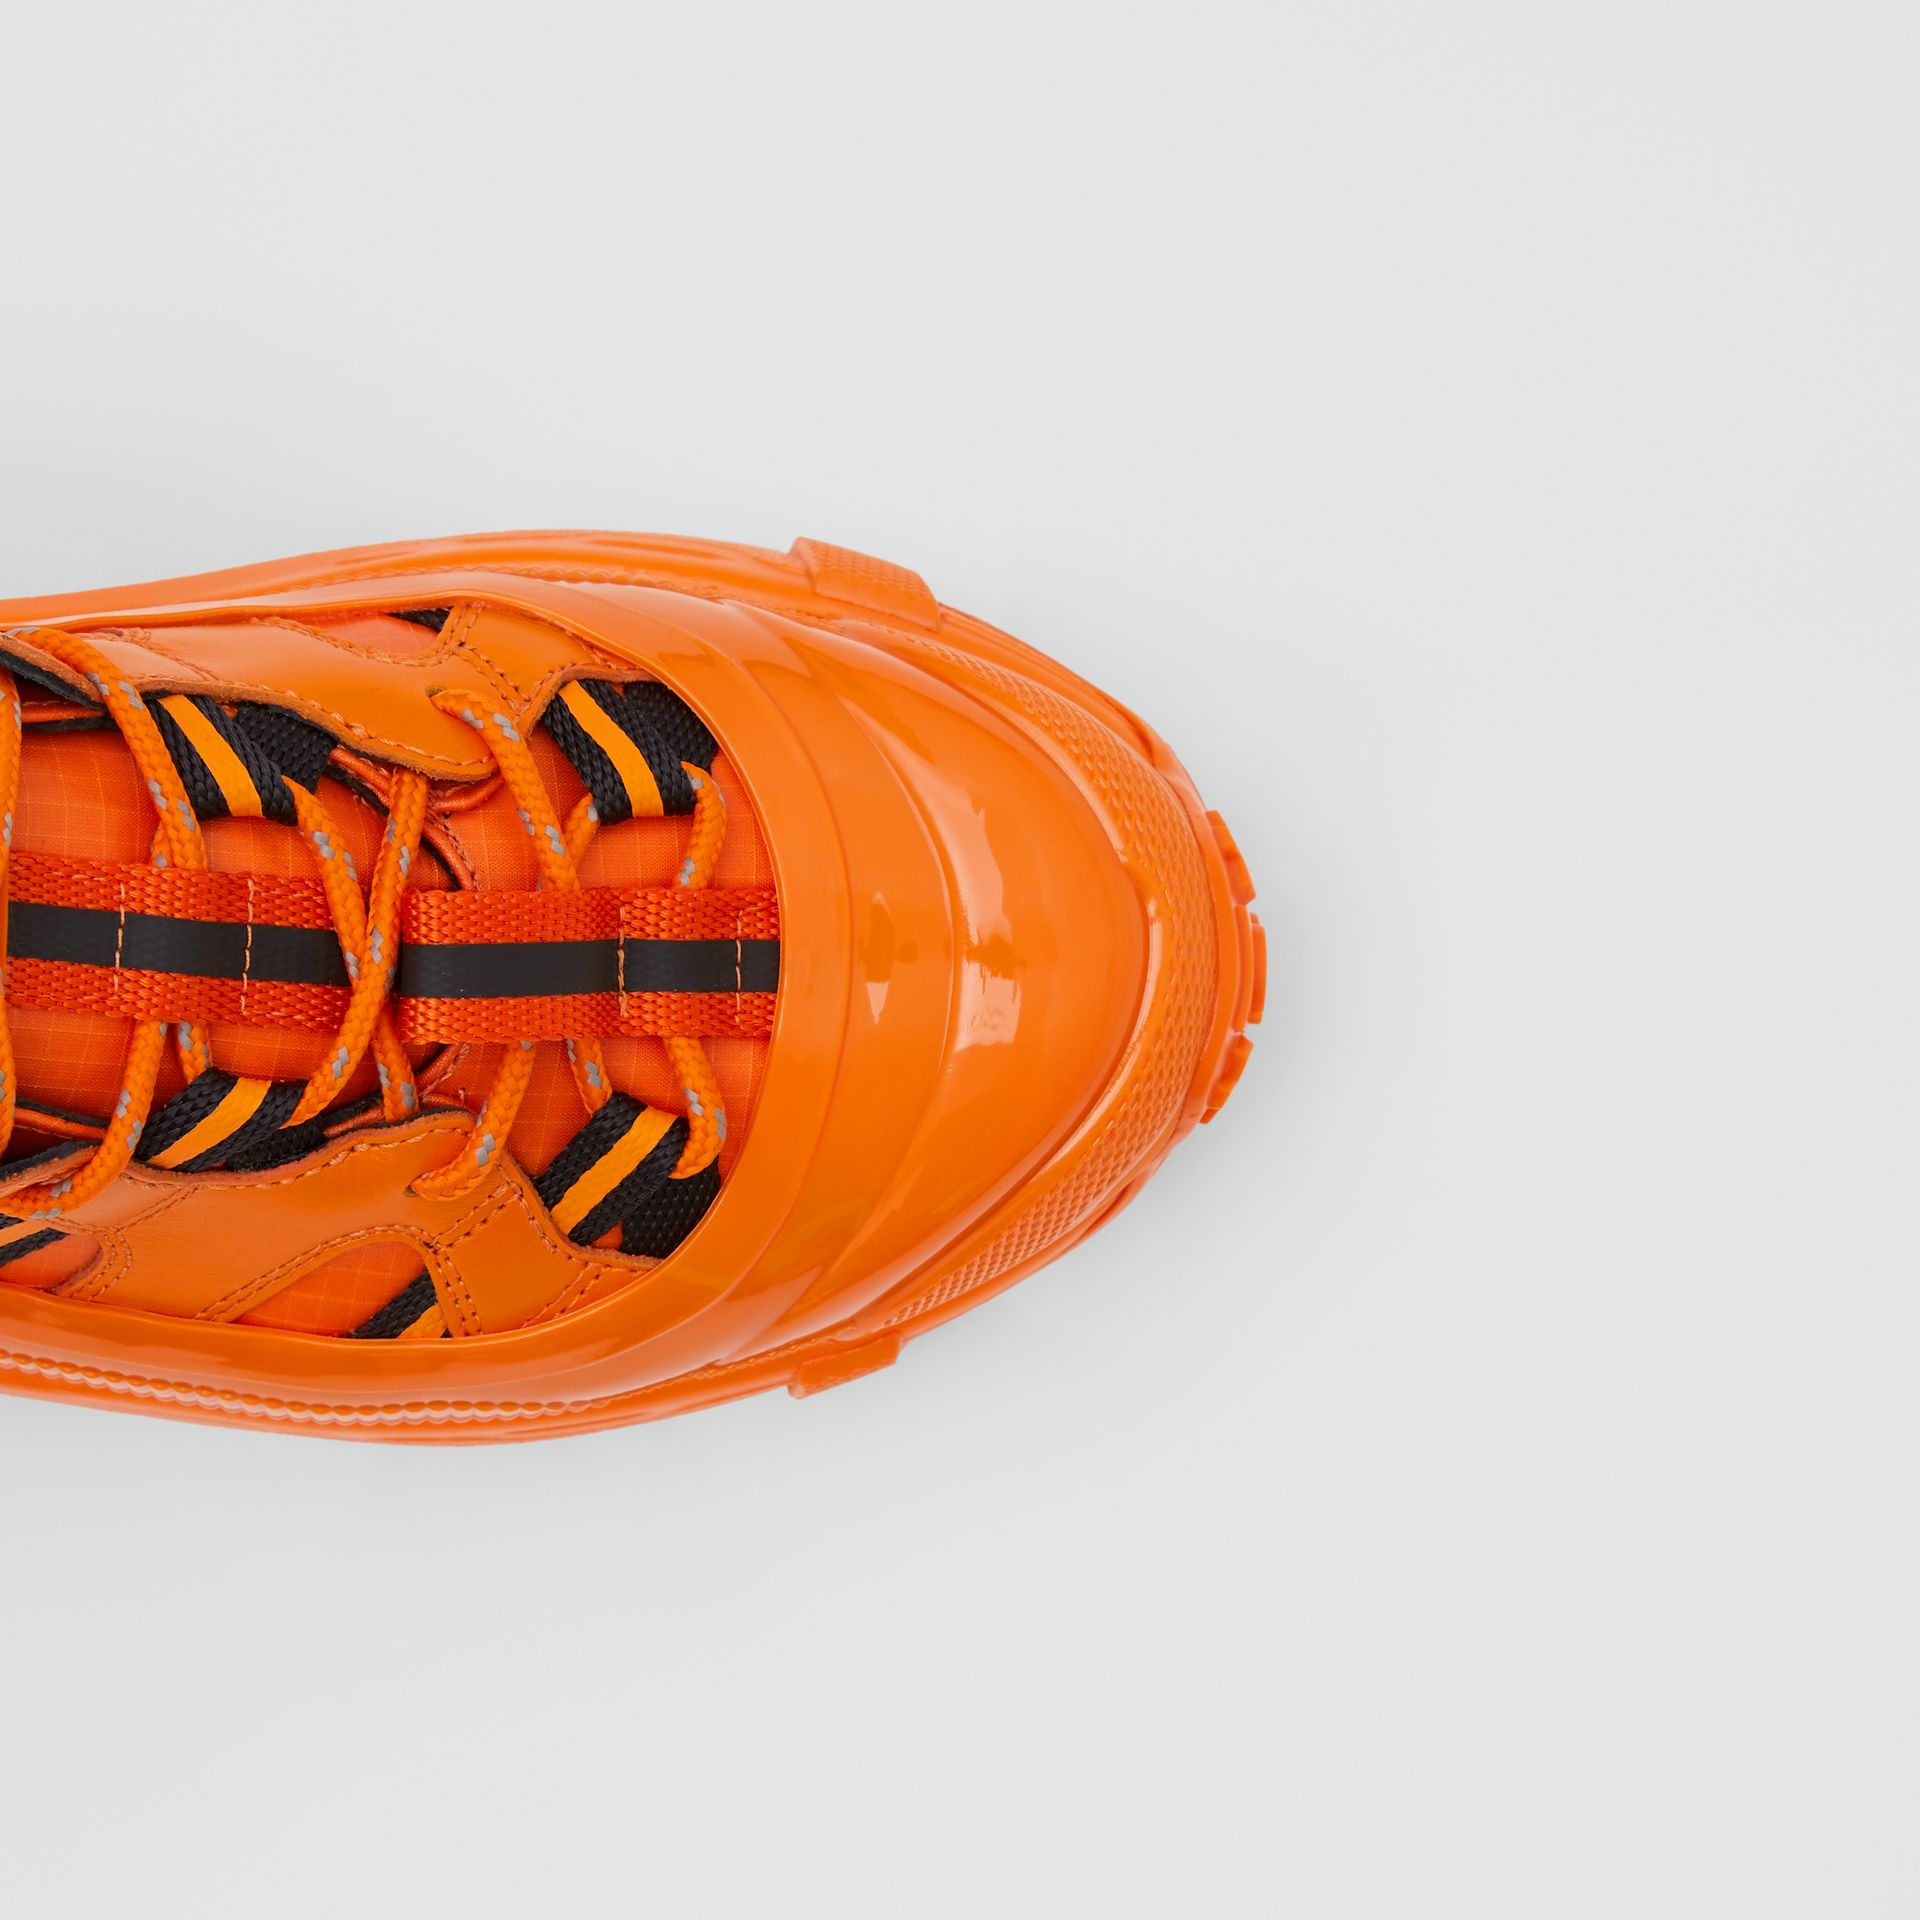 Leather and Nylon Arthur Sneakers in Bright Orange - Women | Burberry - gallery image 1